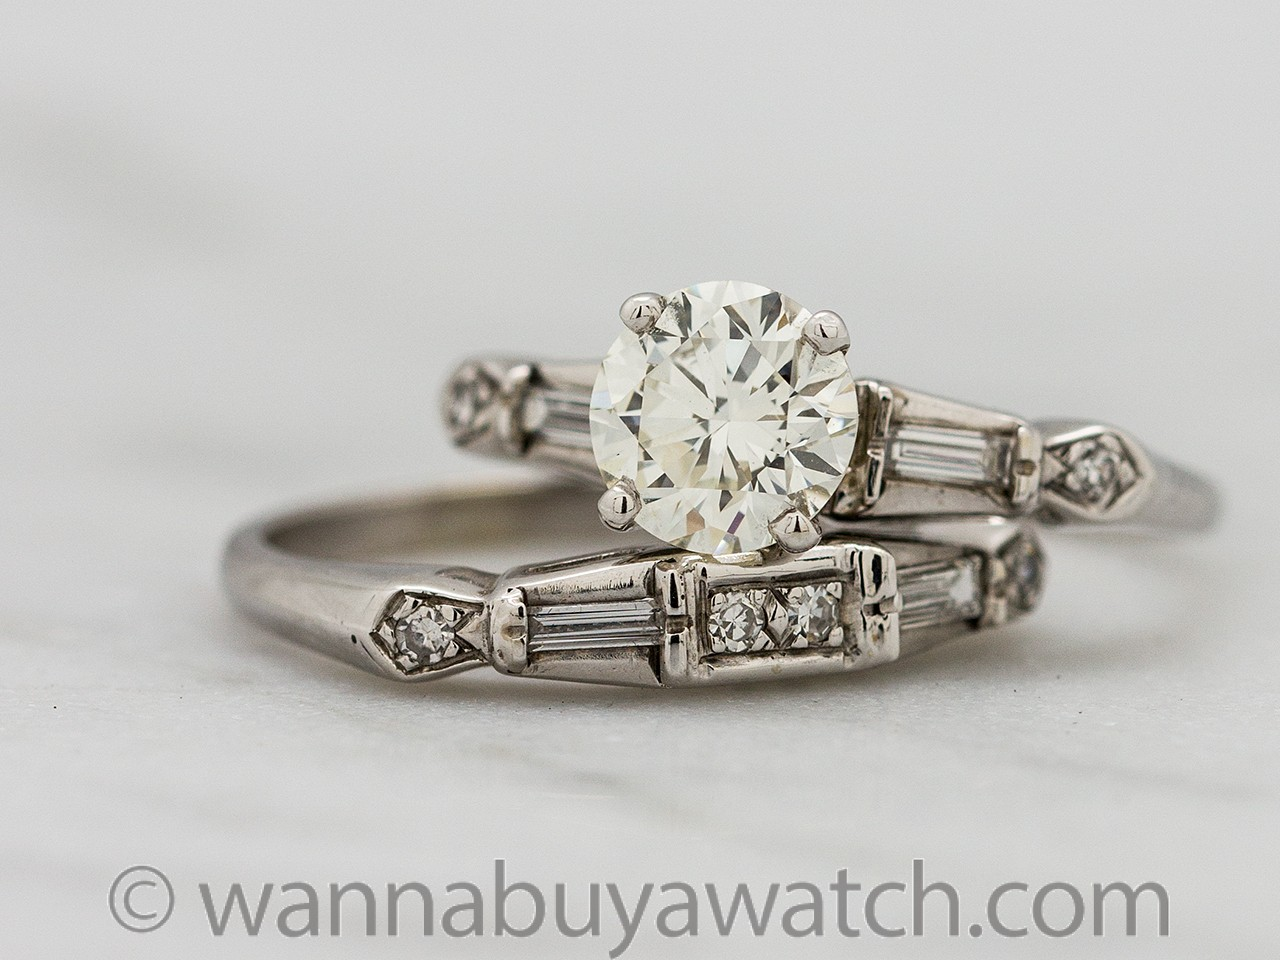 Vintage Diamond Engagement Ring Wedding Set 14K WG 0.93ct I-VS1 circa 1950s